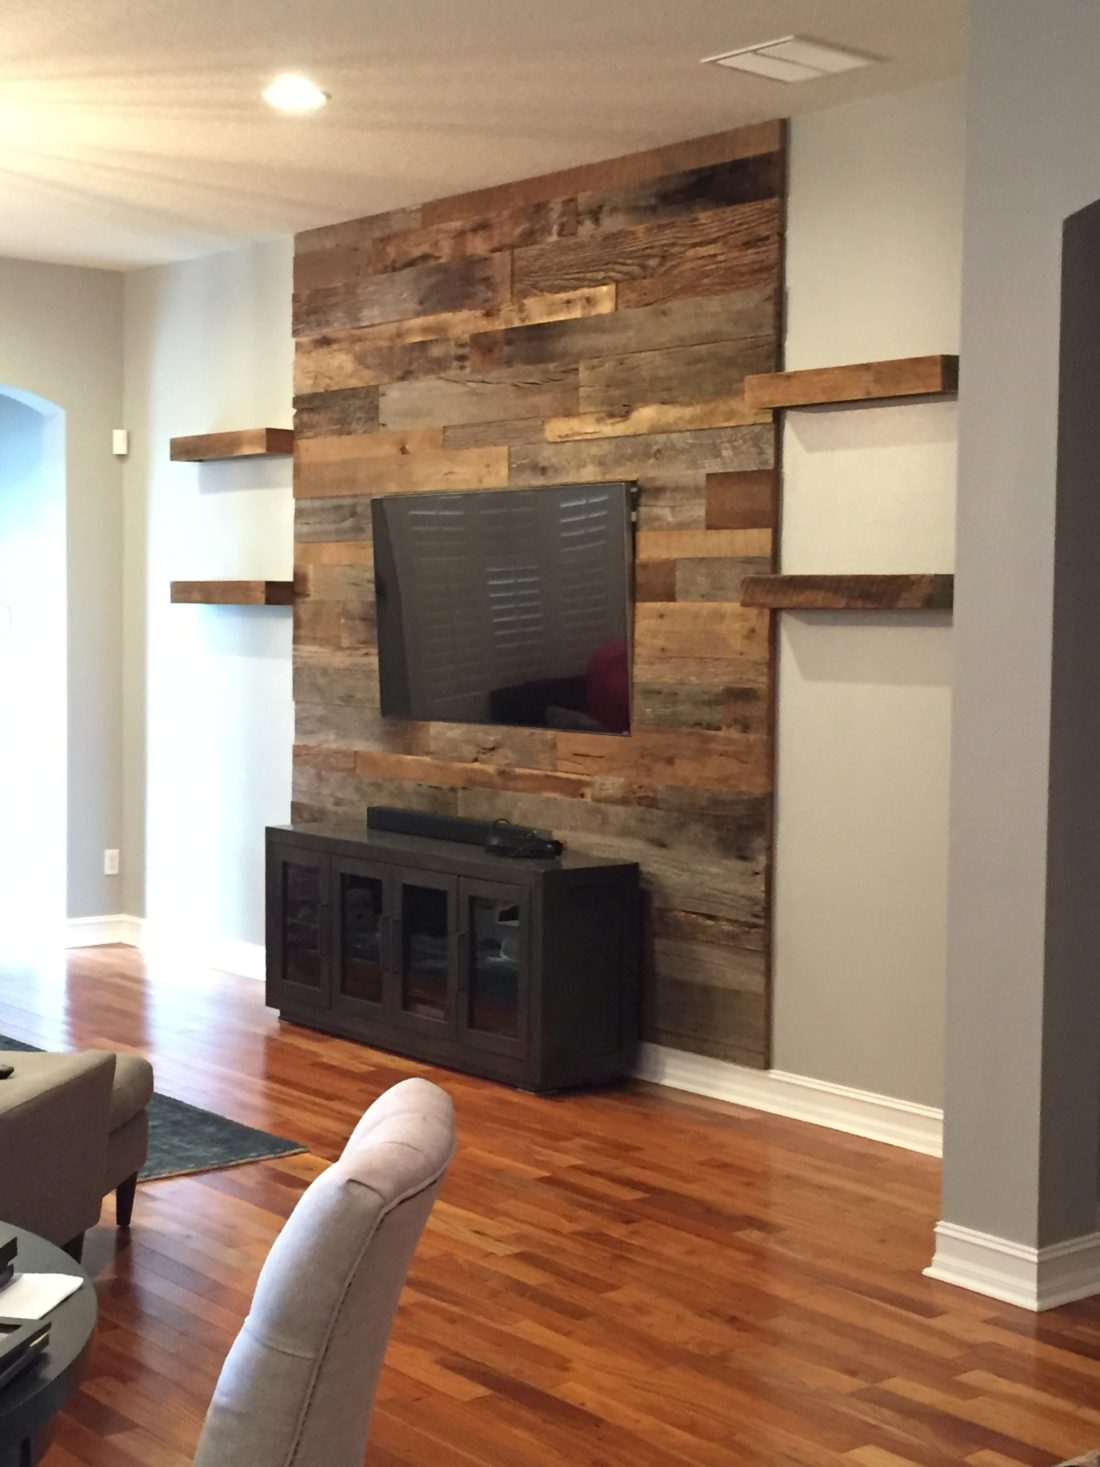 Living Room Feature Wall Design: Trevor's Reclaimed Barn Wood Accent Wall With Shelving